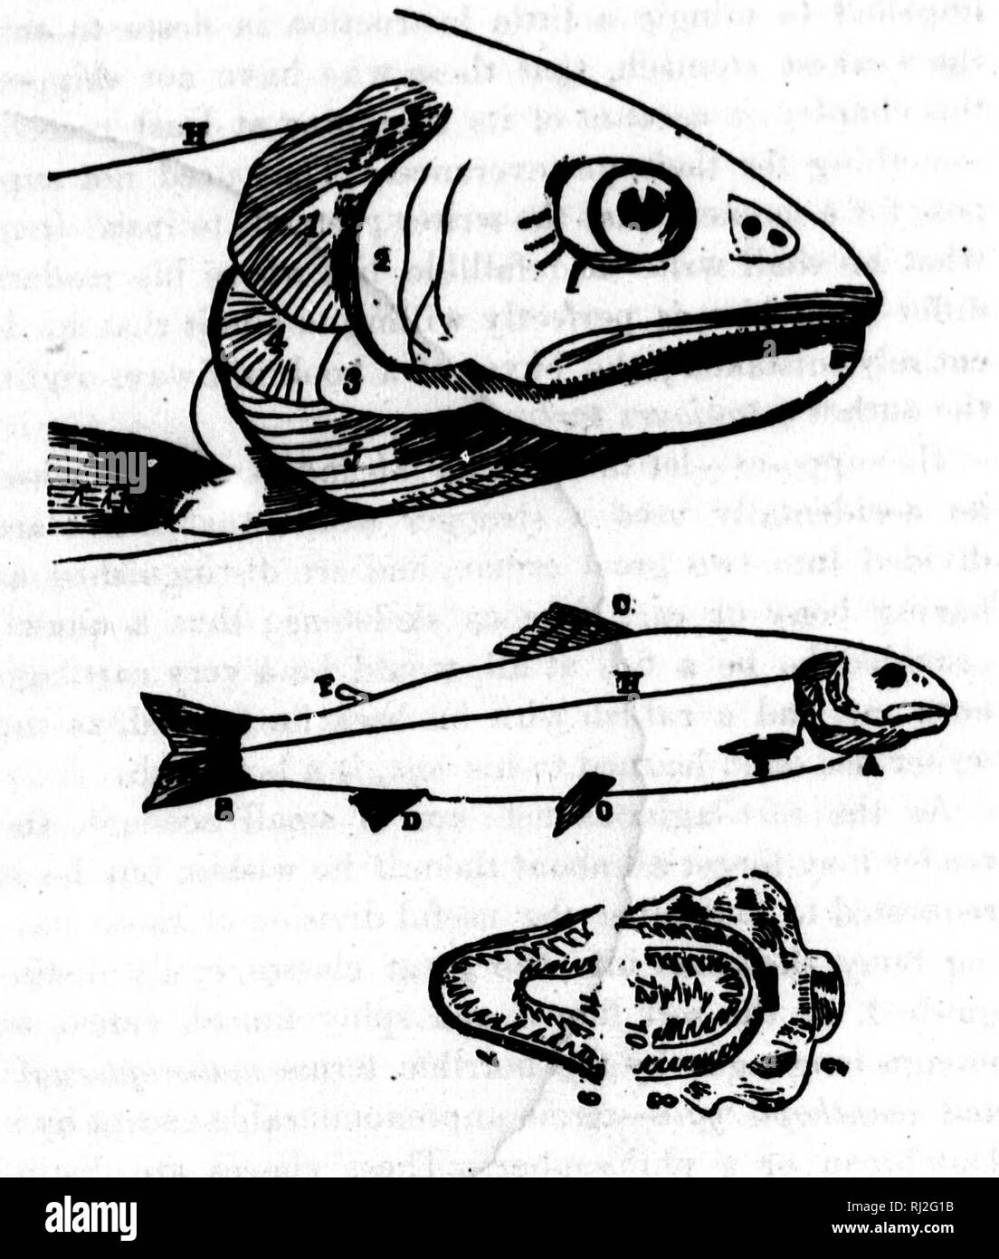 medium resolution of  the game fish of the northern states and british provinces microform with an account of the salmon and sea trout fishing of canada and new brunswick